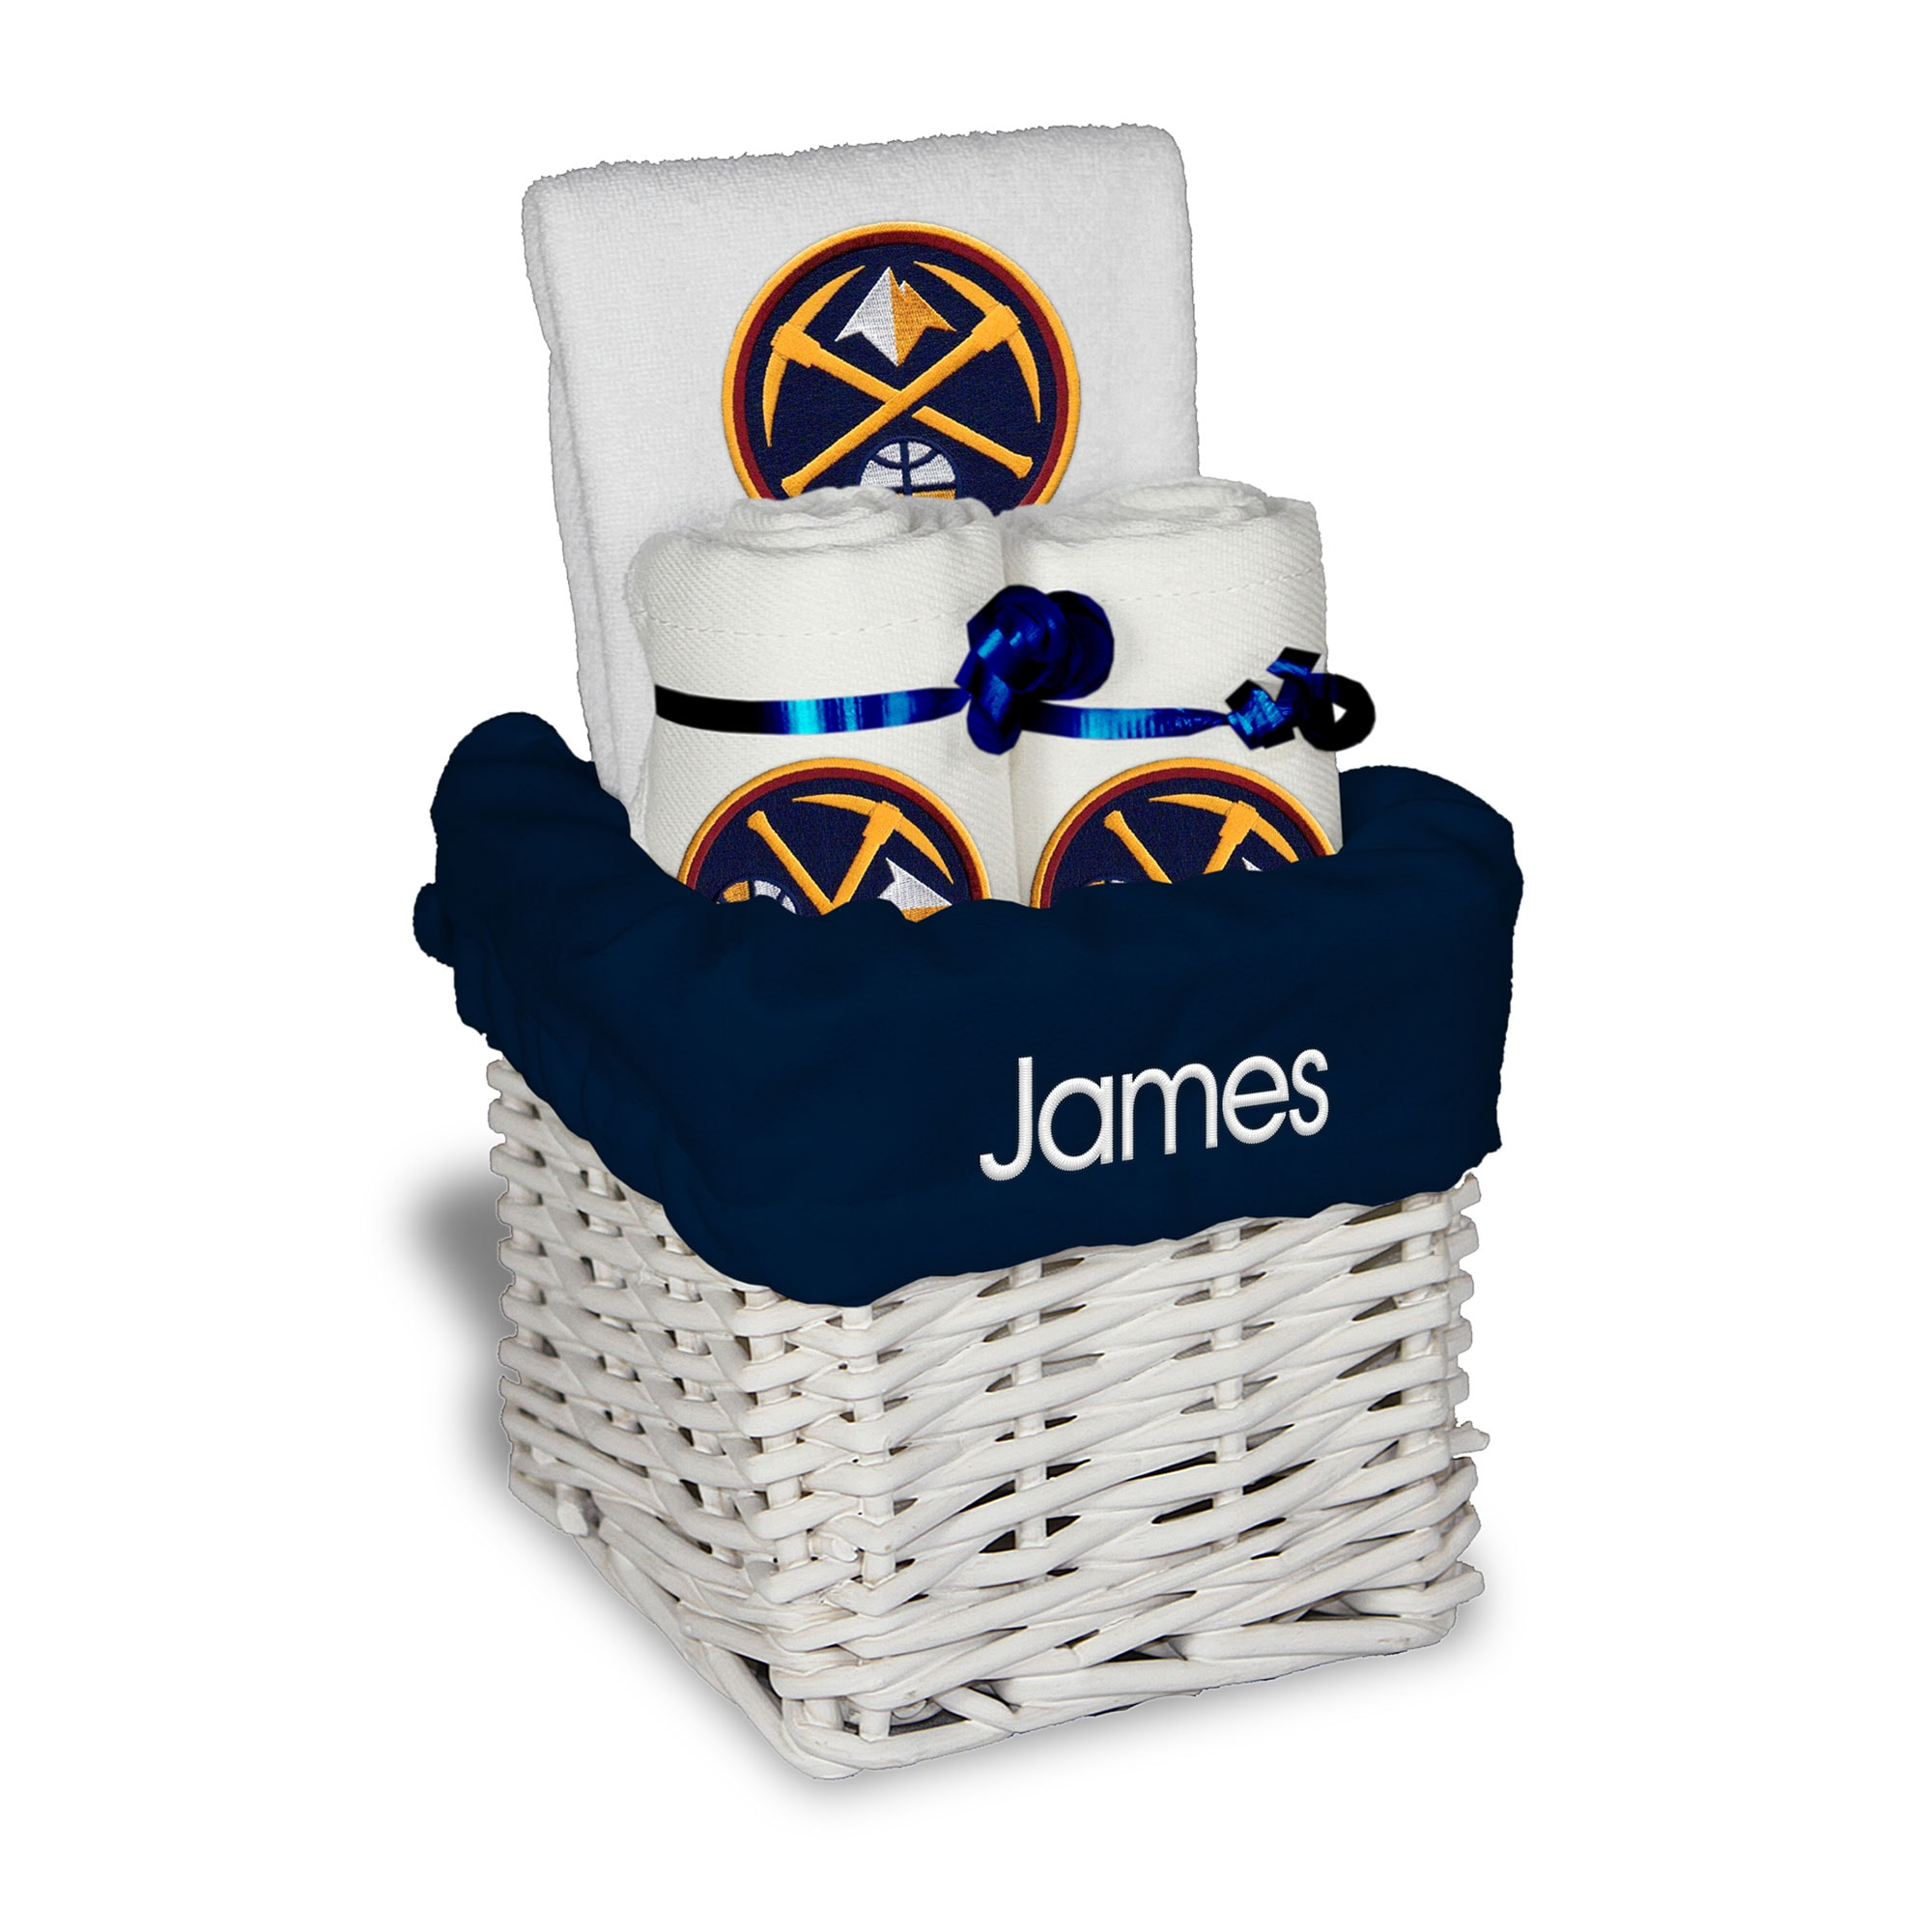 Denver Nuggets Personalized Small Gift Basket - White